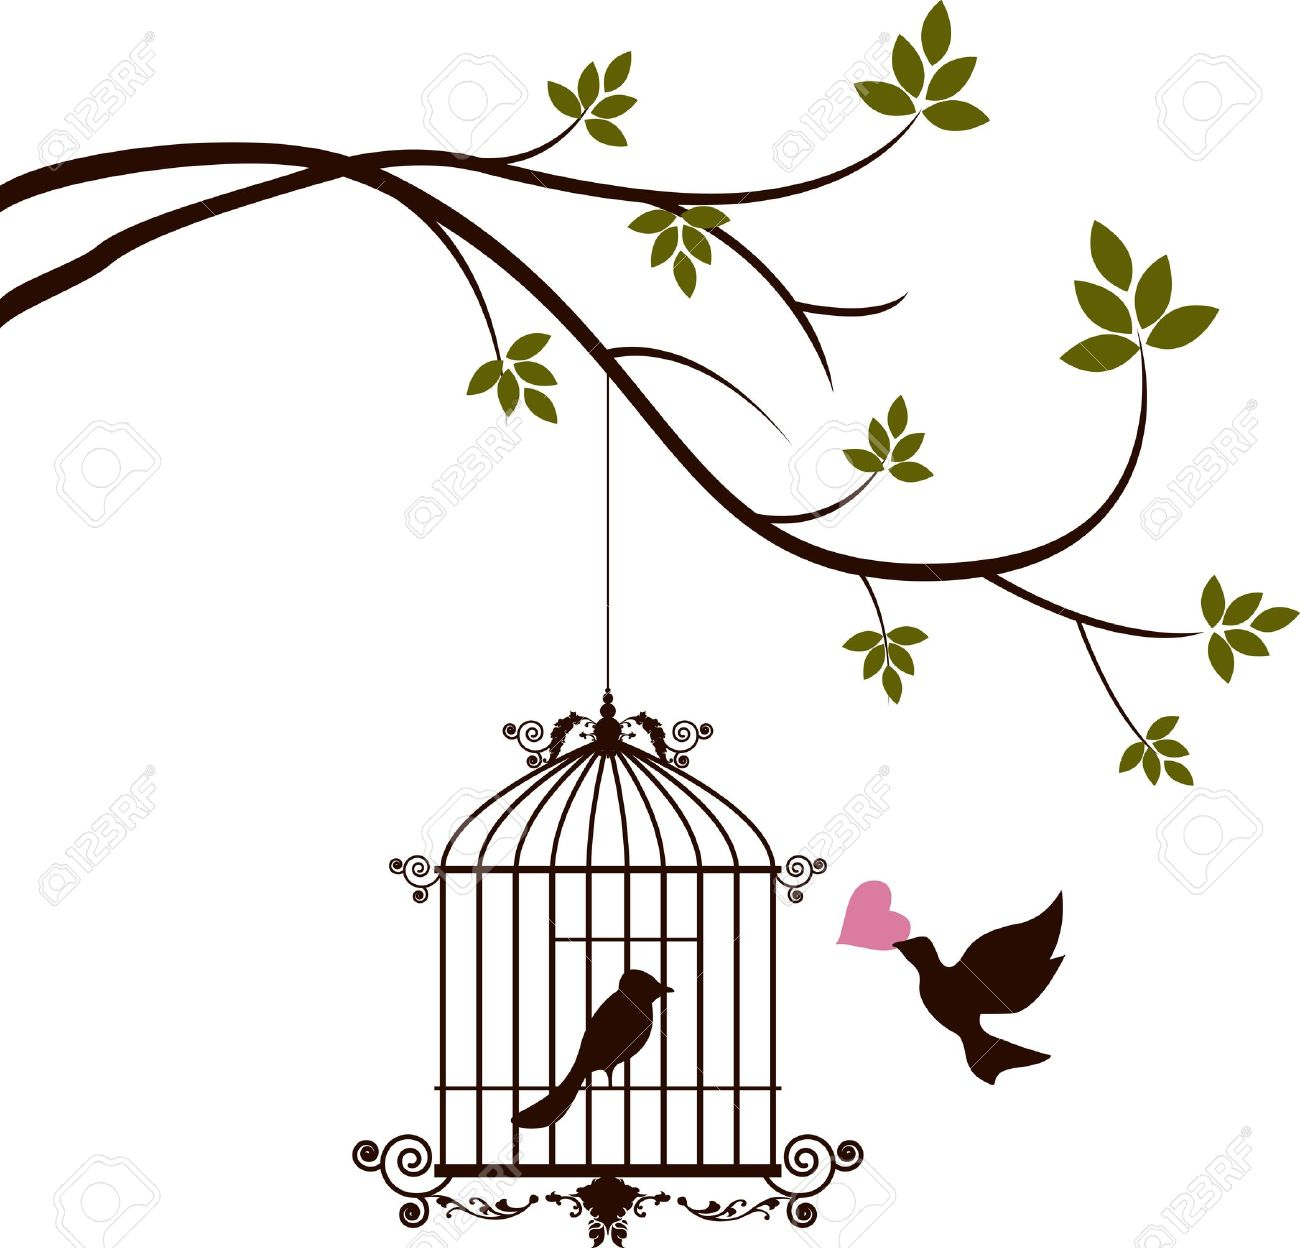 bird are bringing love to the bird in the cage royalty free cliparts rh 123rf com